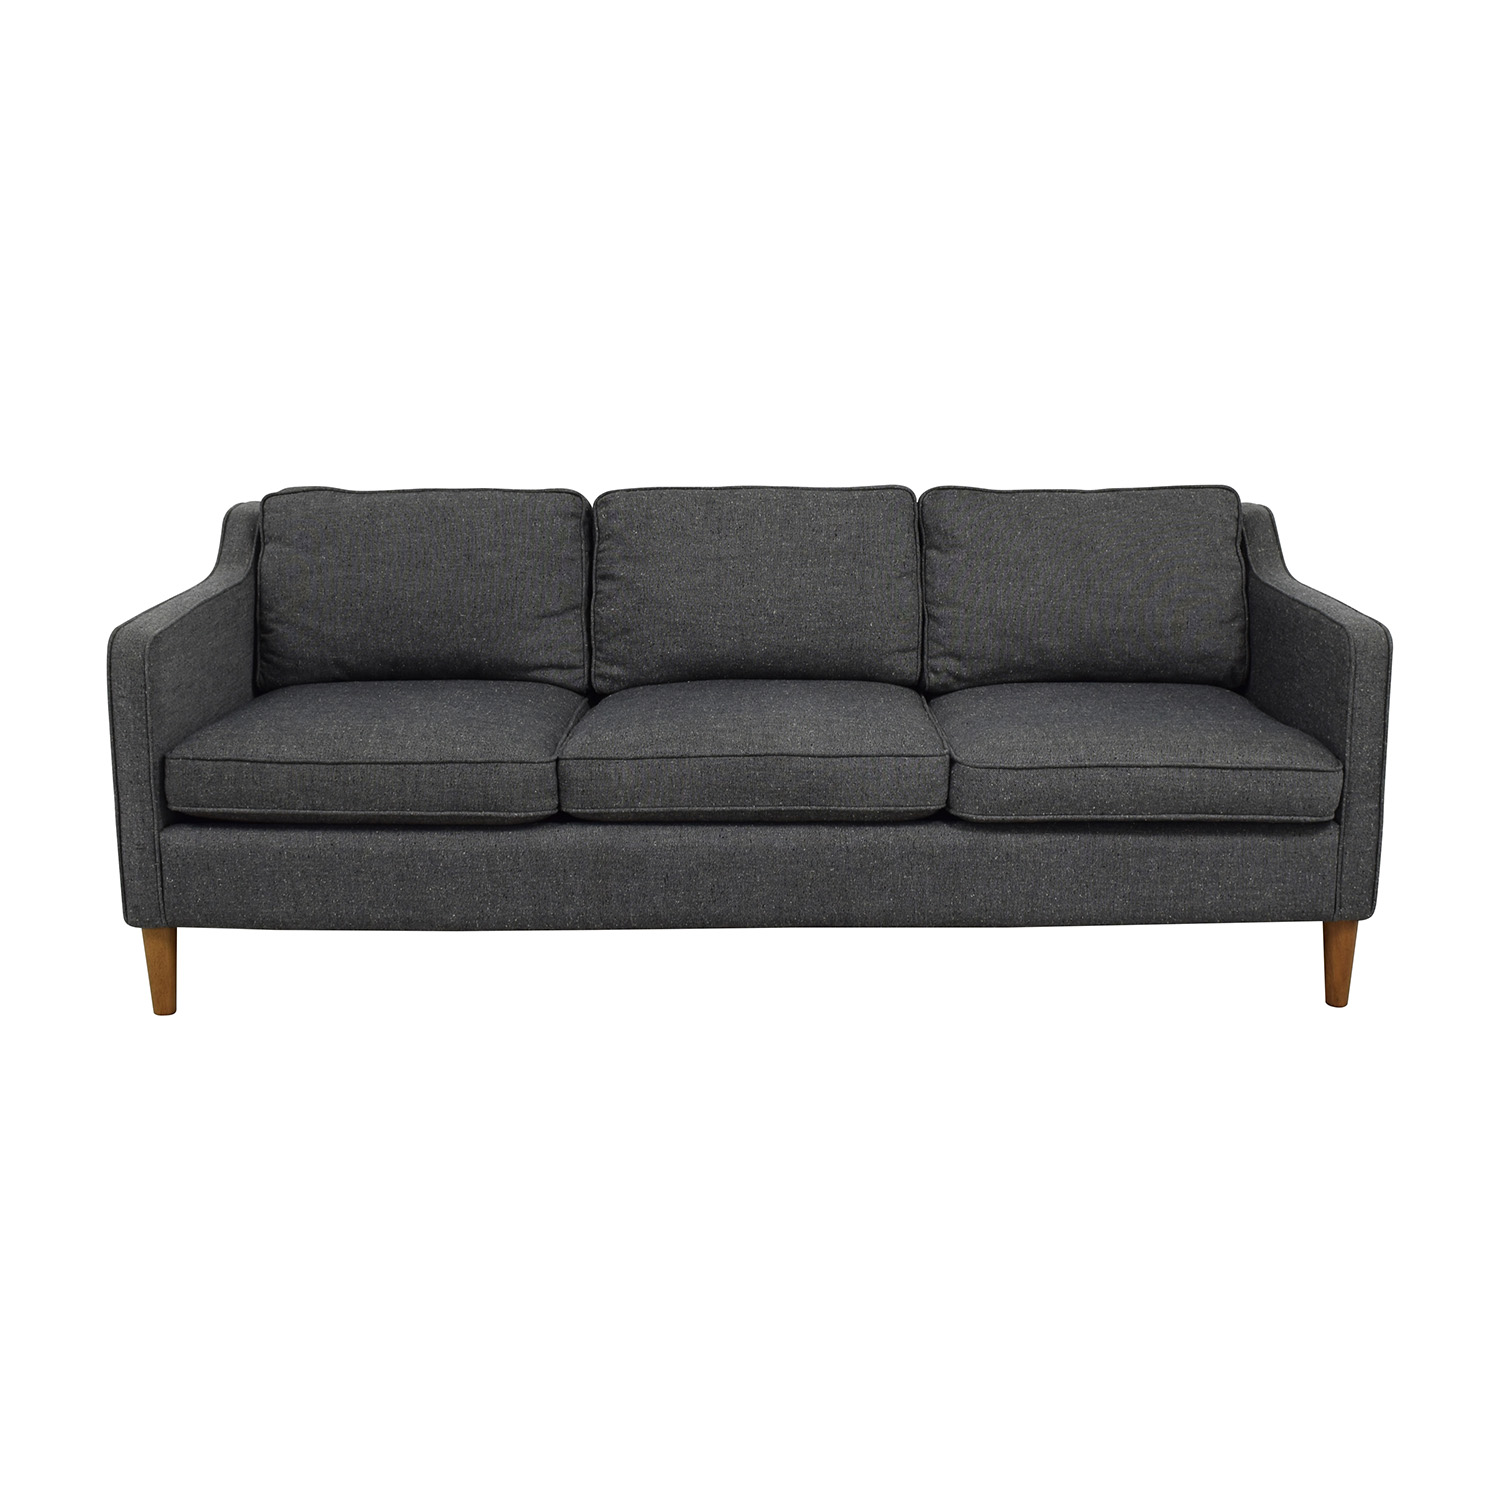 Buy West Elm Hamilton Sofa In Tweed West Elm ...